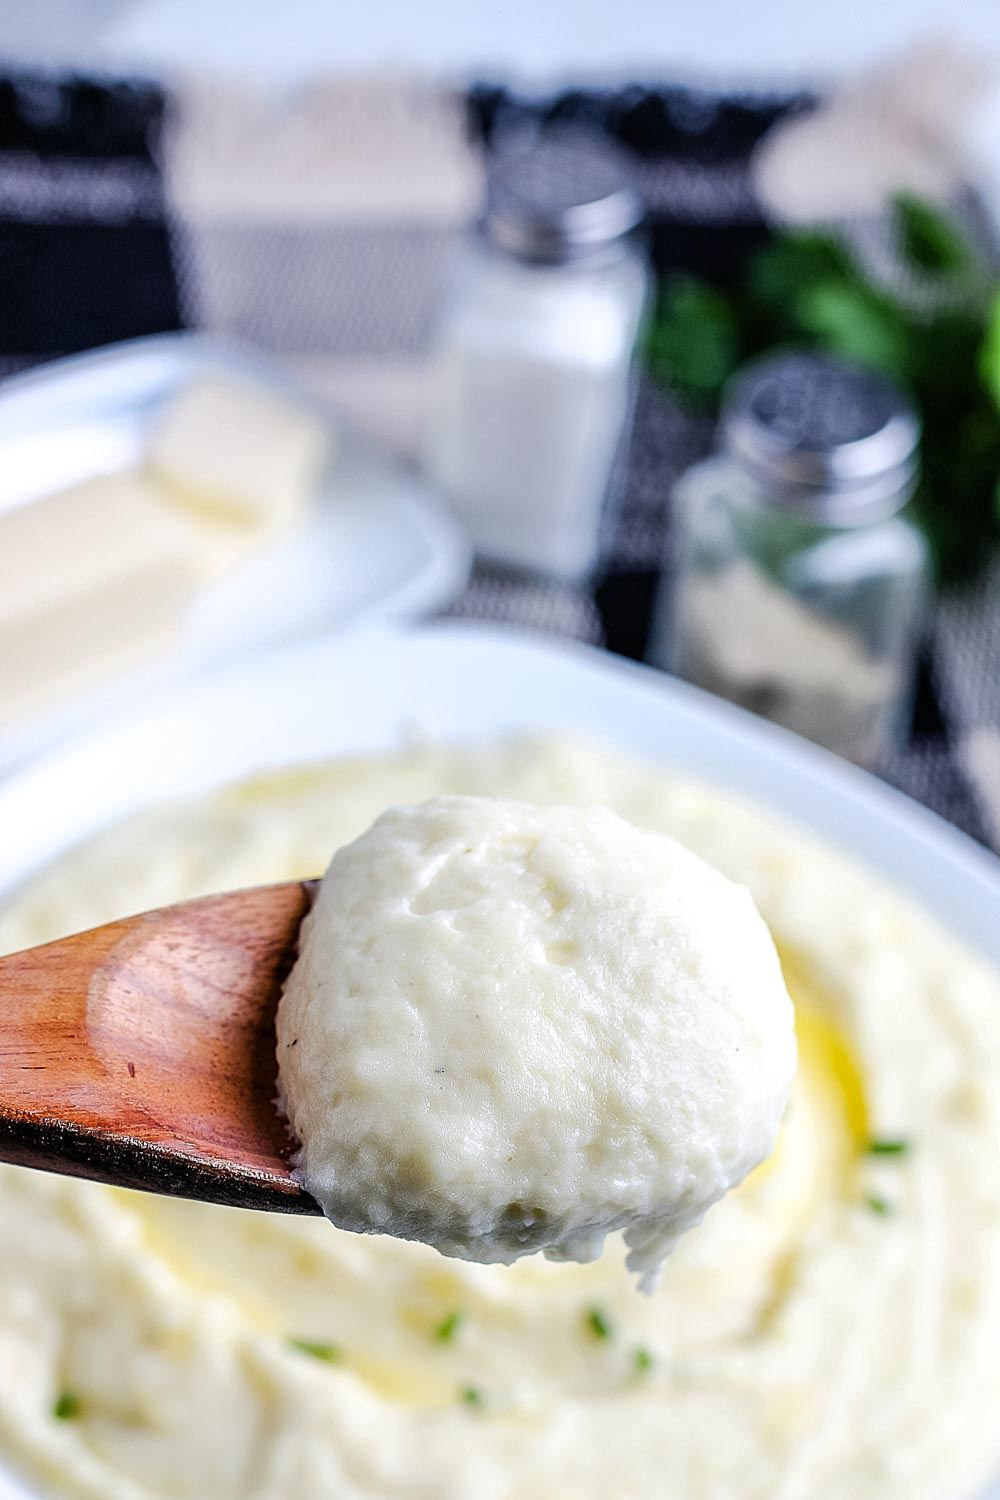 A close up picture of a spoon picking up some mashed potatoes made with cream.